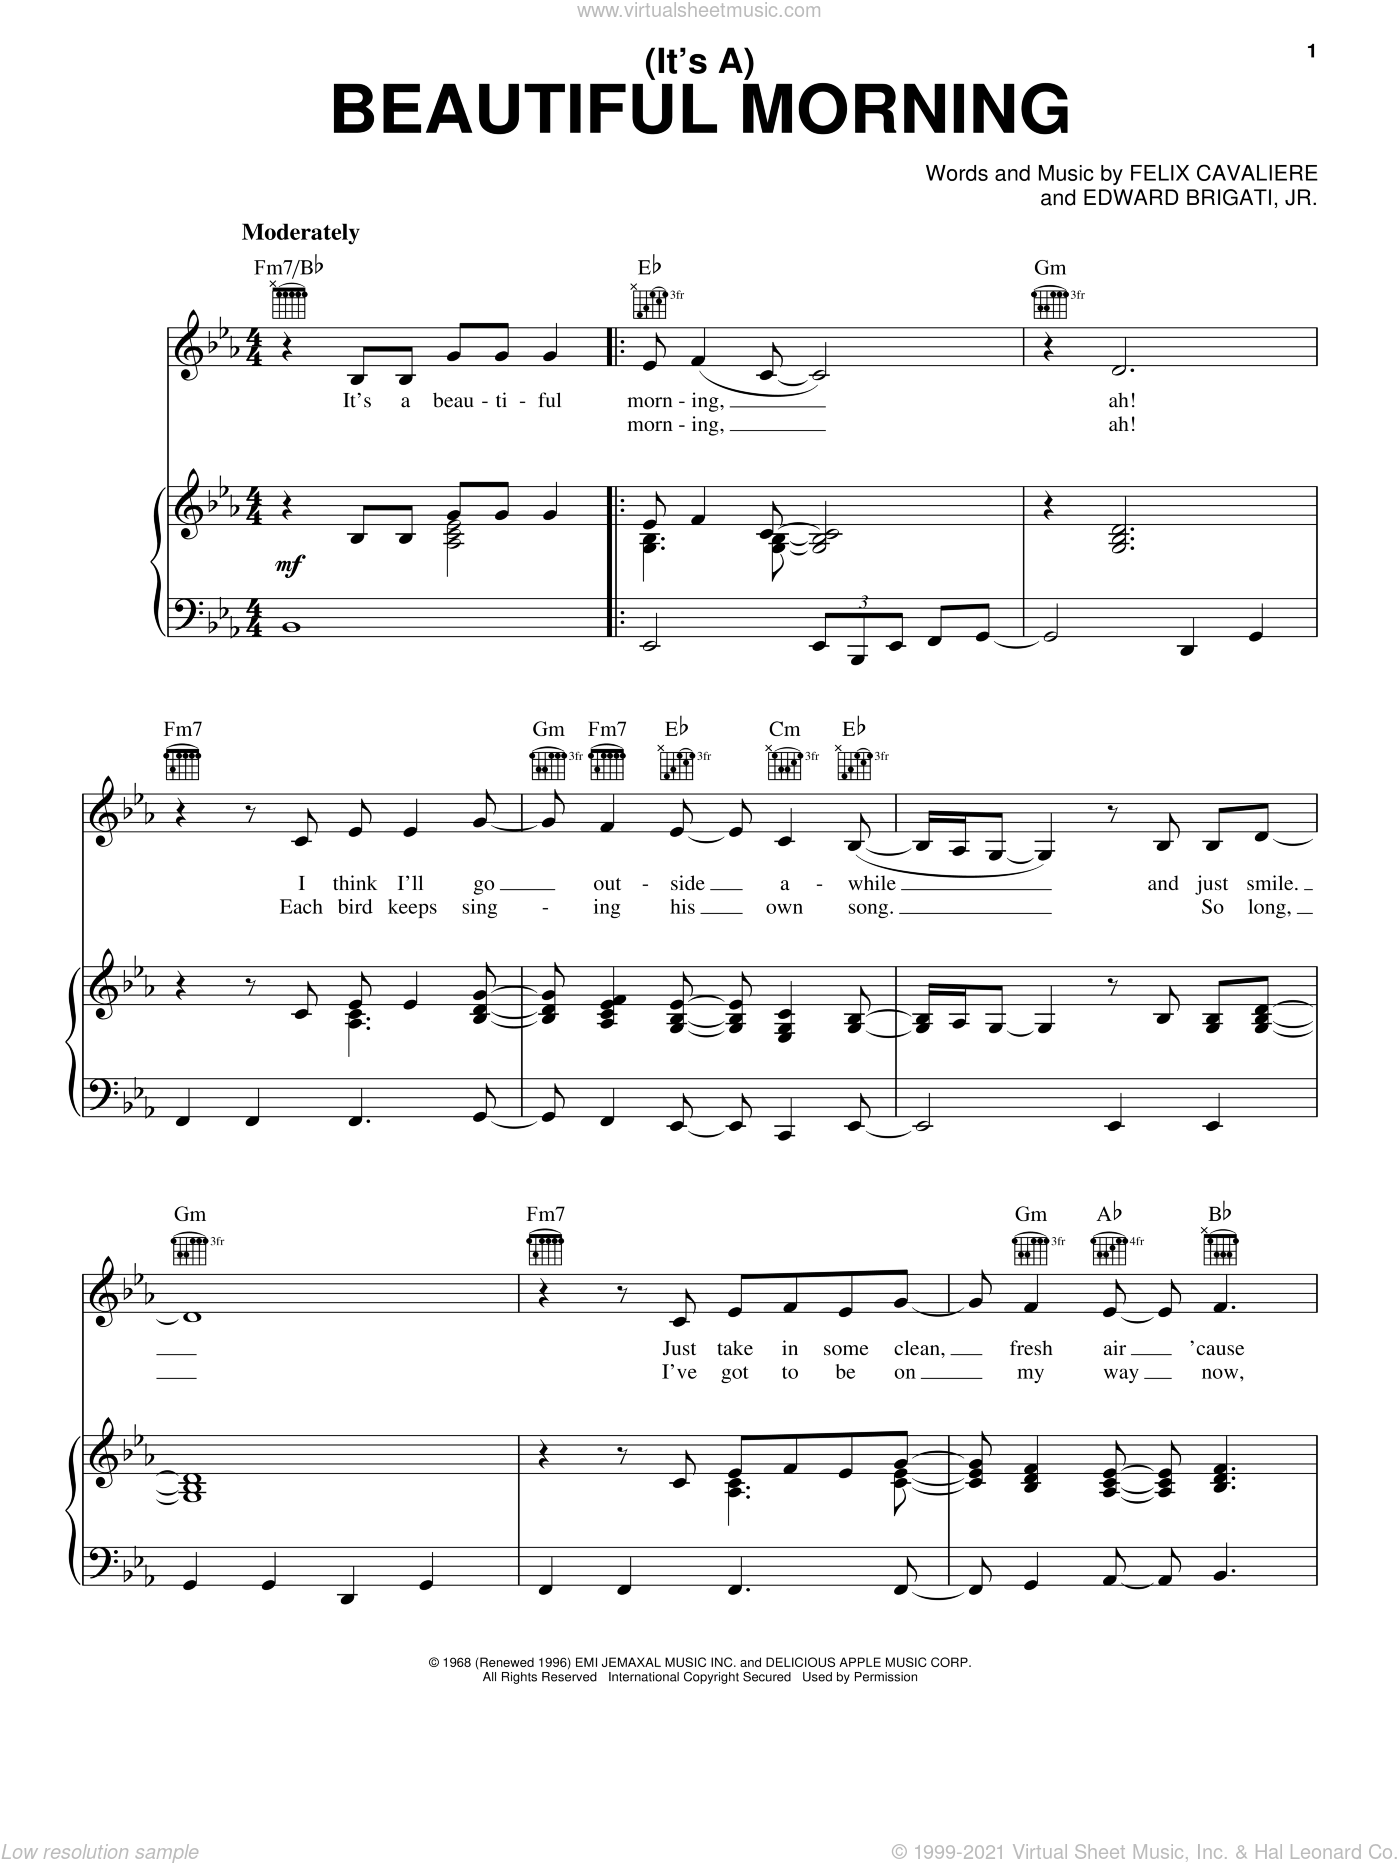 (It's A) Beautiful Morning sheet music for voice, piano or guitar by Felix Cavaliere